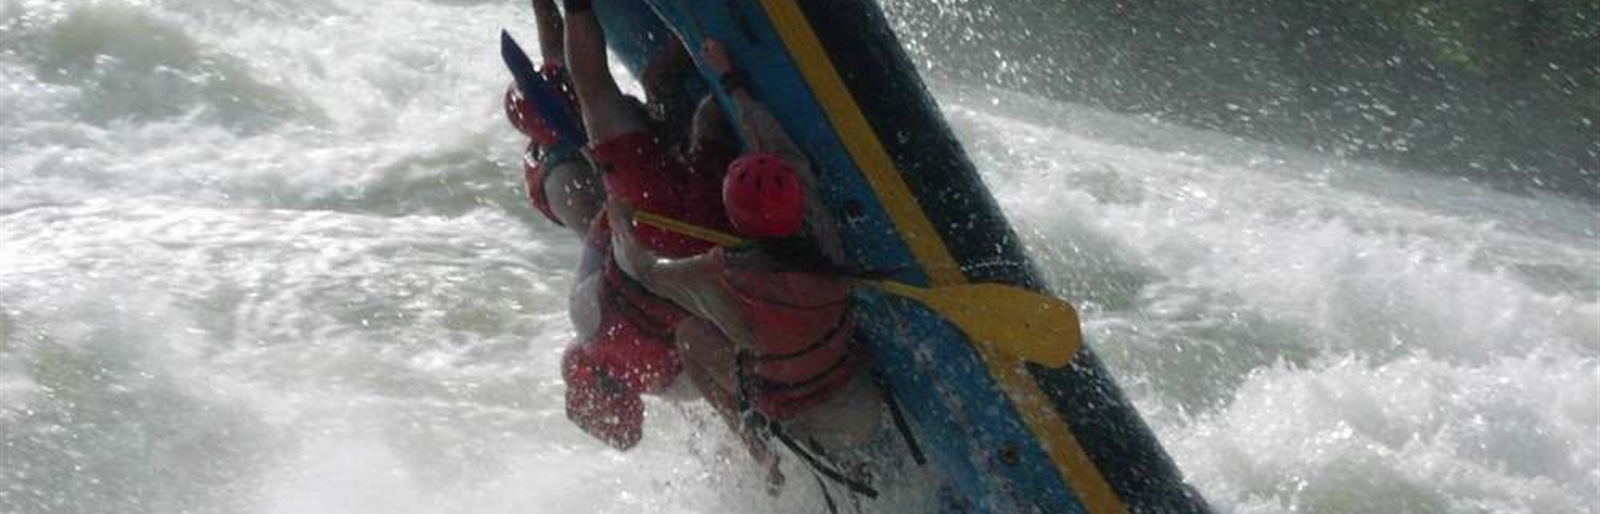 Maximum -  Rafting on the River Nile - Uganda